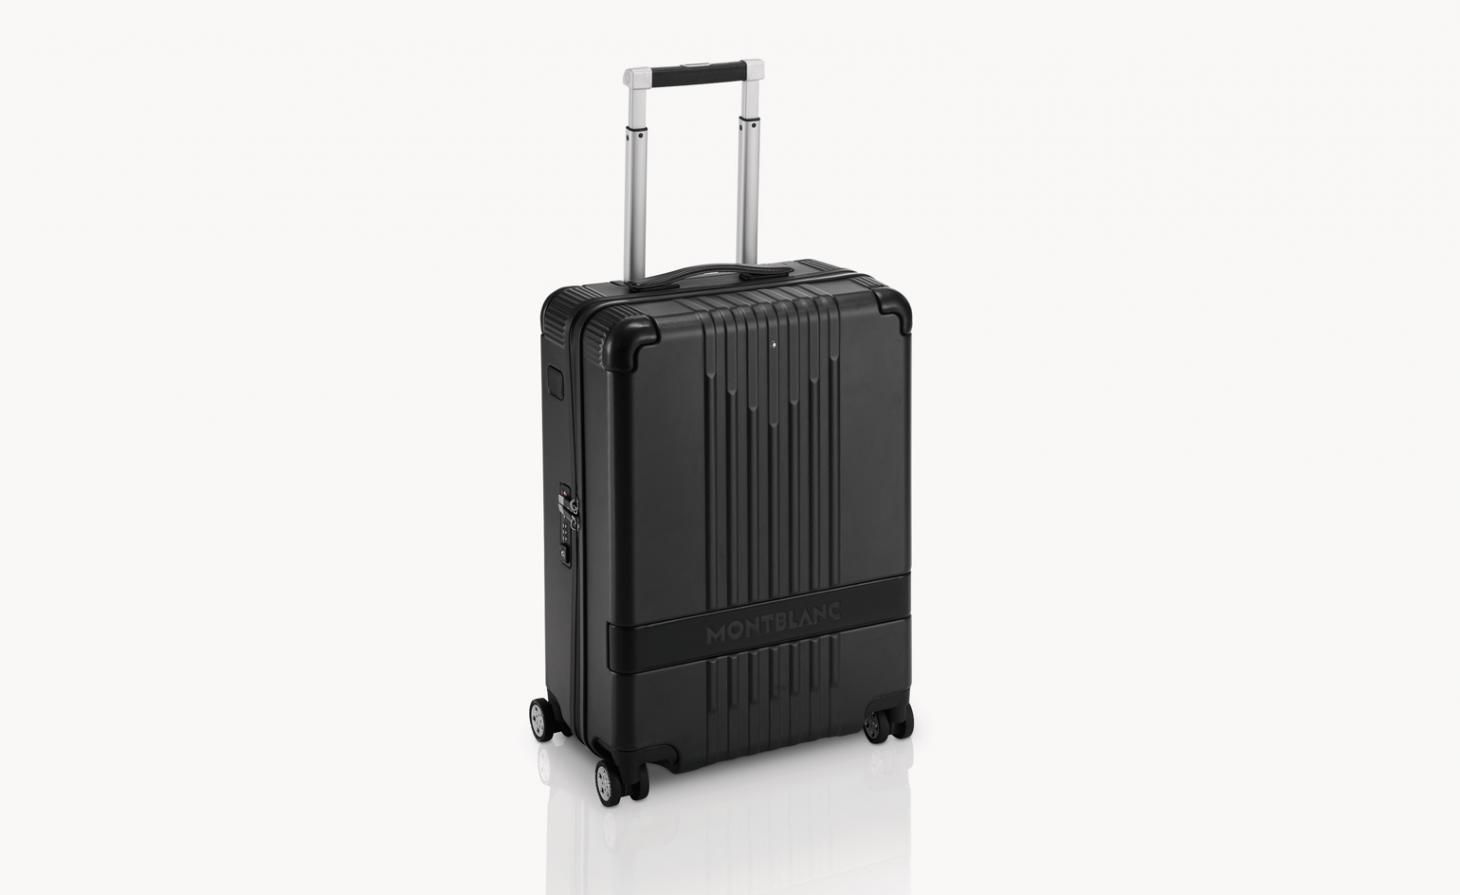 Montblanc #MY4810 cabin trolley luggage